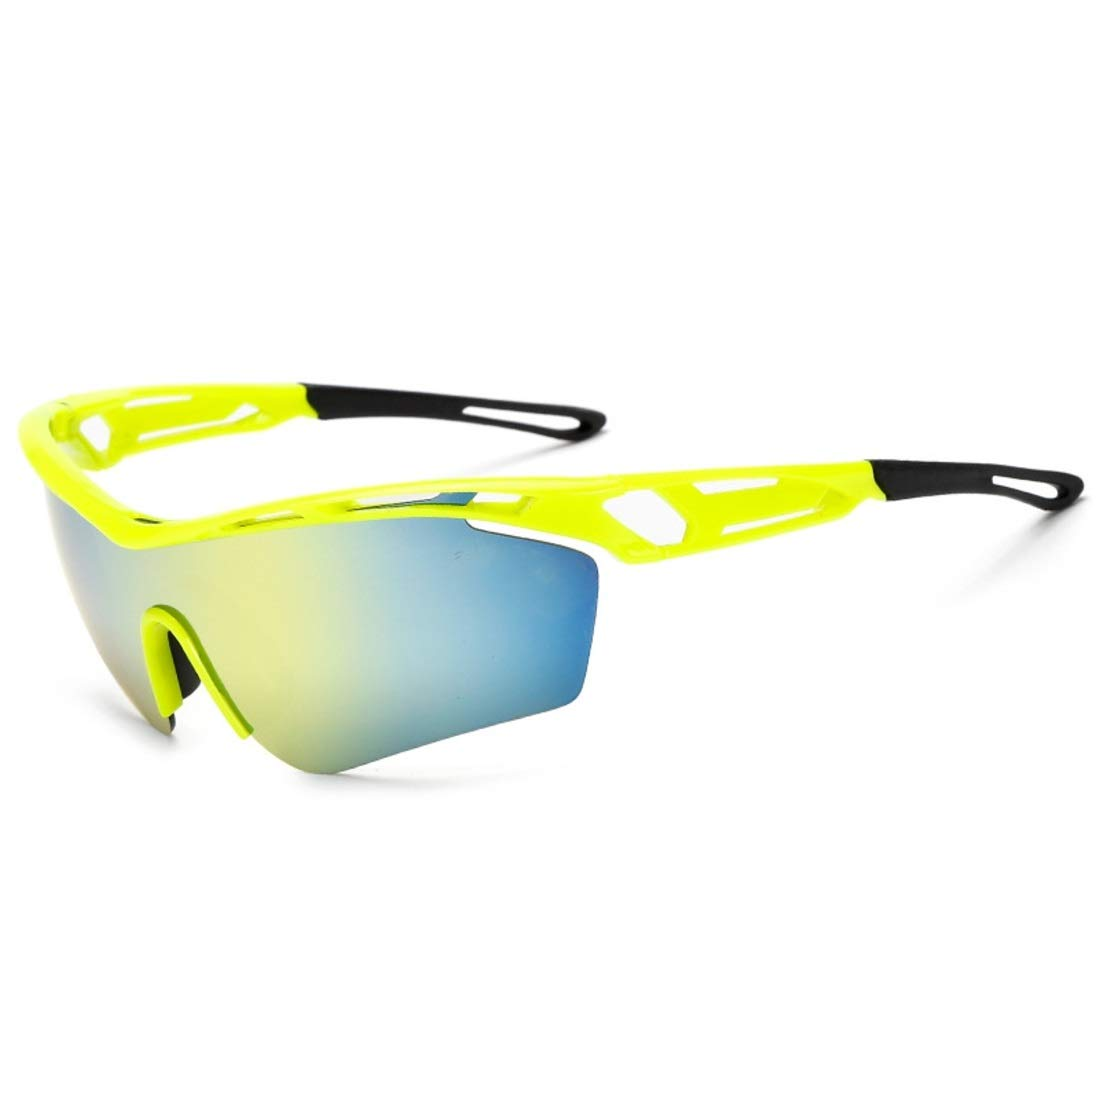 BAOYIT Riding Glasses Mountain Bike Windproof Sand Sunglasses Running Hiking Outdoor Sunglasses Men and Women (Color : Yellow) by BAOYIT